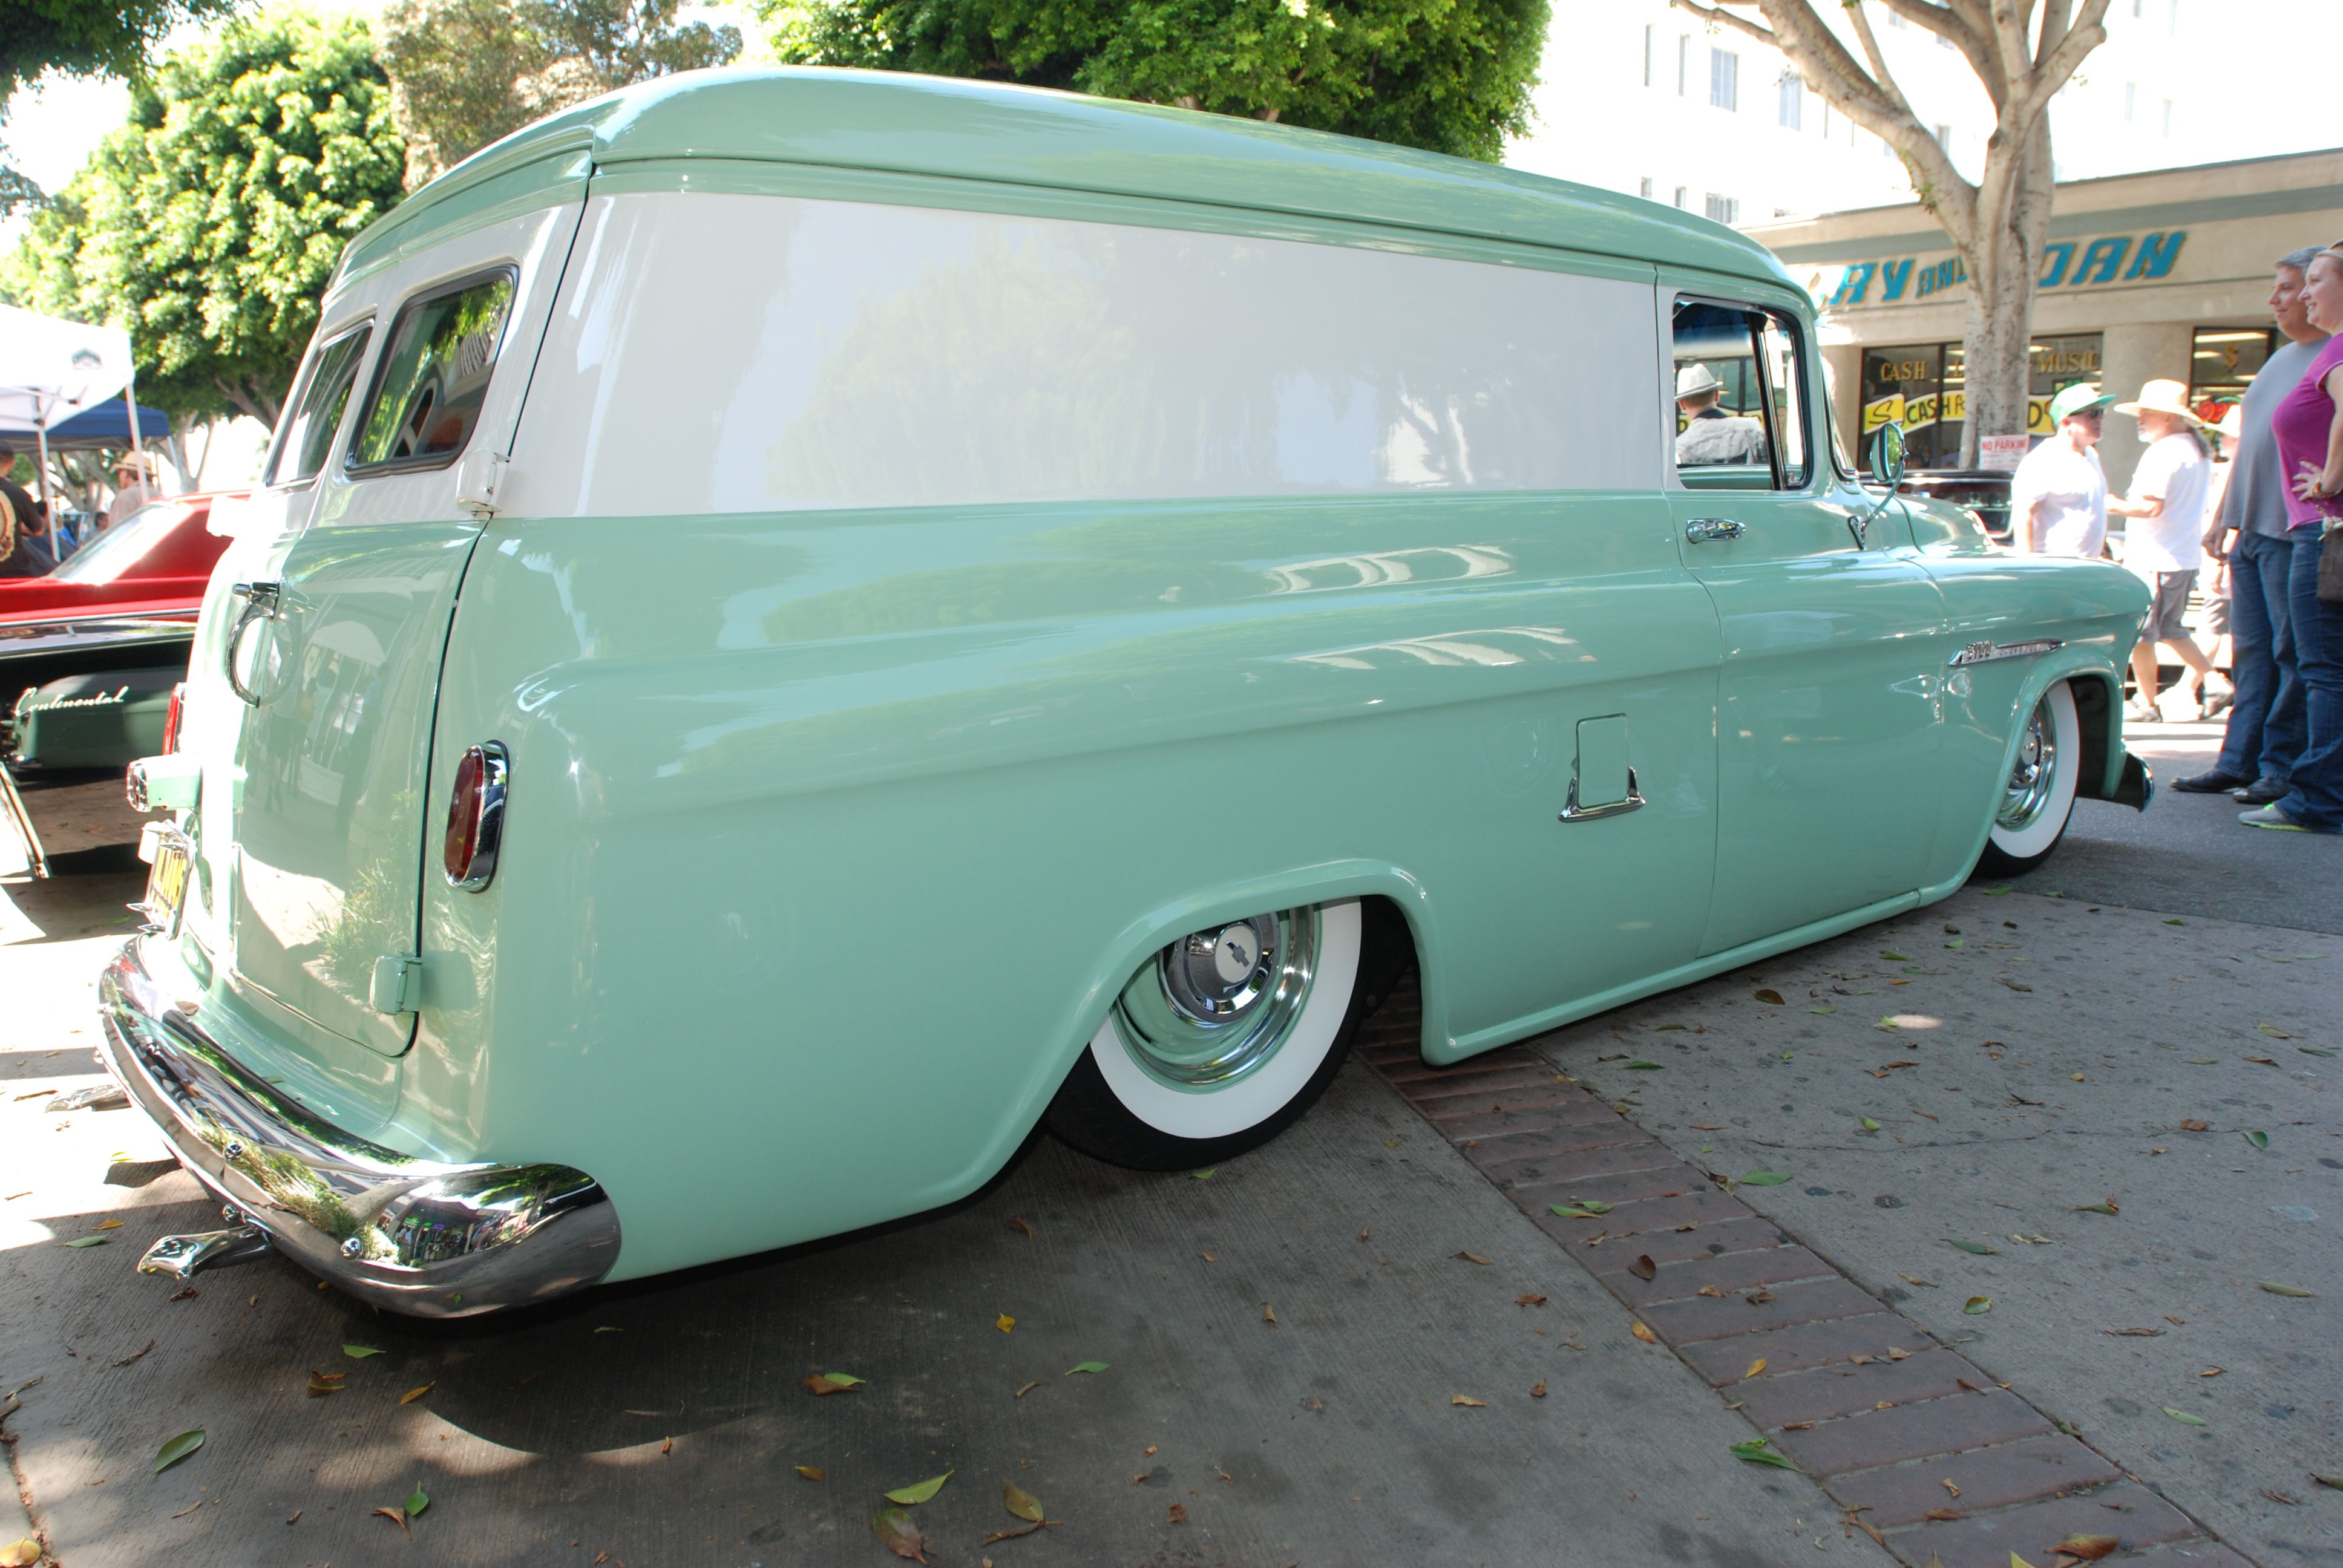 Seafoam Green Paint Reflection In The Side Of Black 1963 Lincoln Continental Parked To